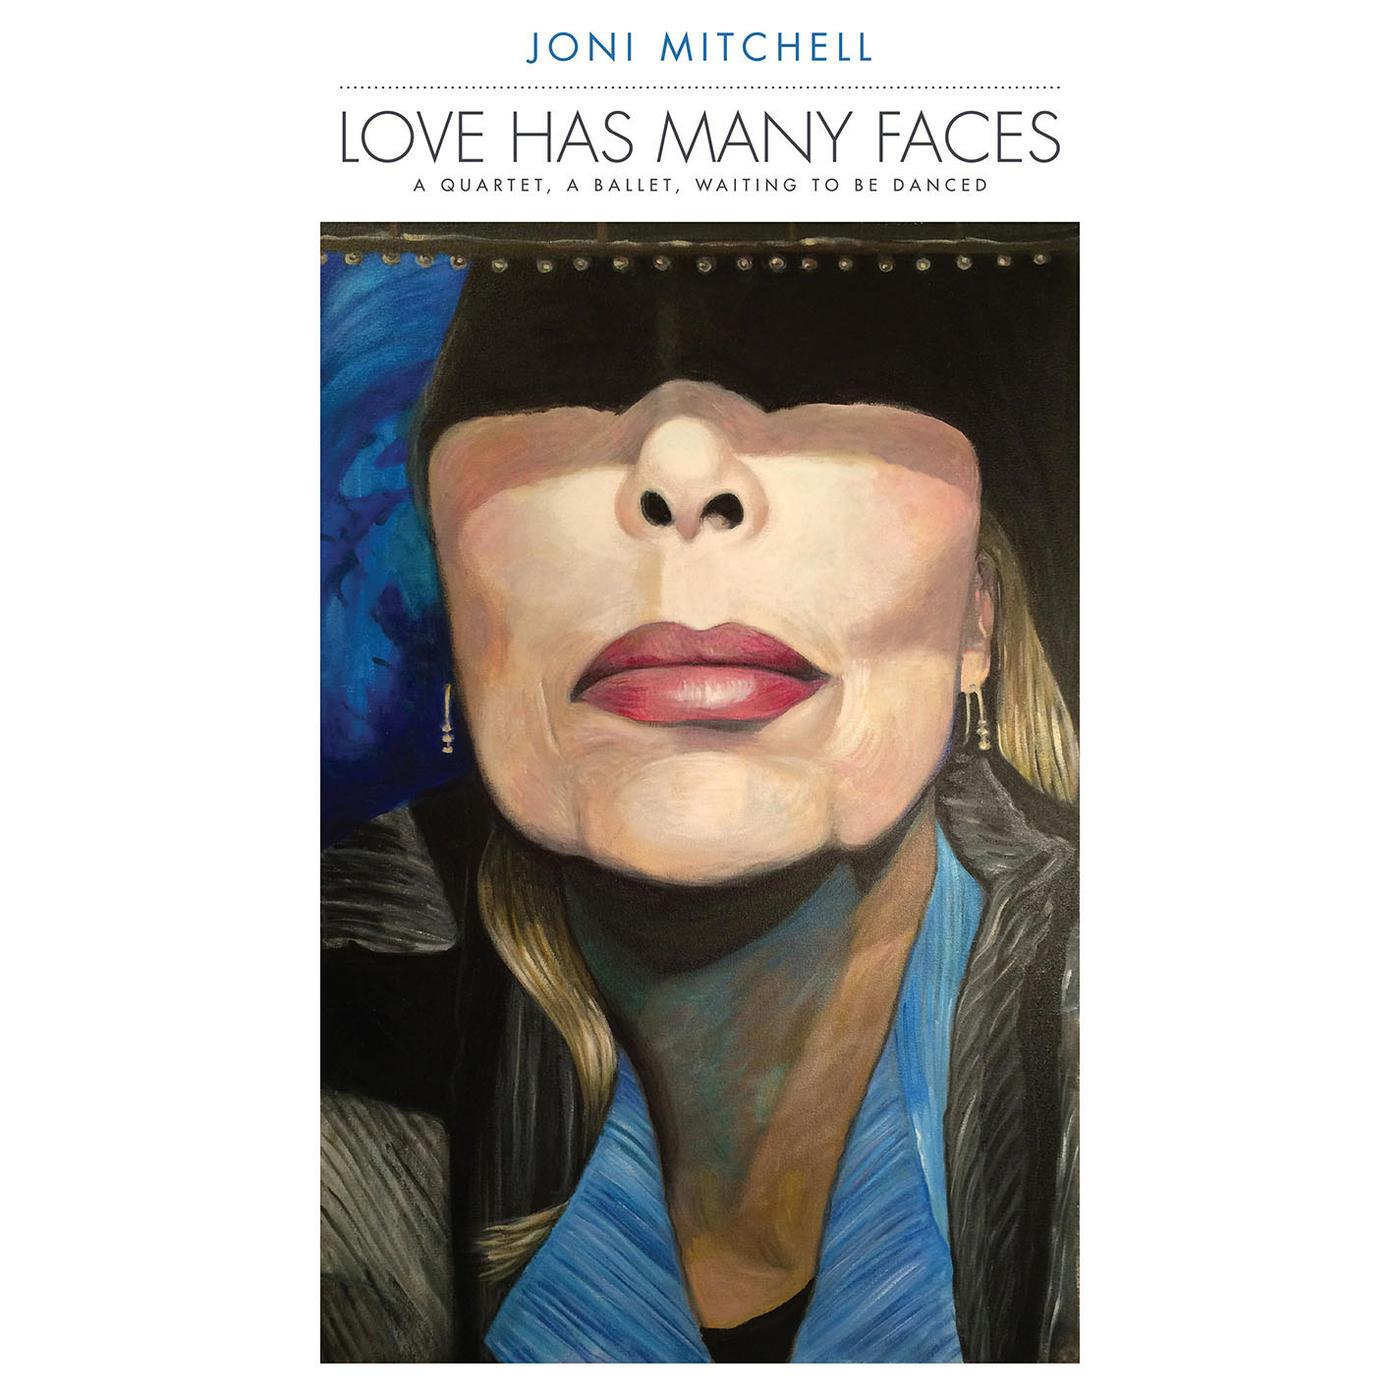 0603497856244 Rhino  Joni Mitchell Love Has Many Faces (8LP)